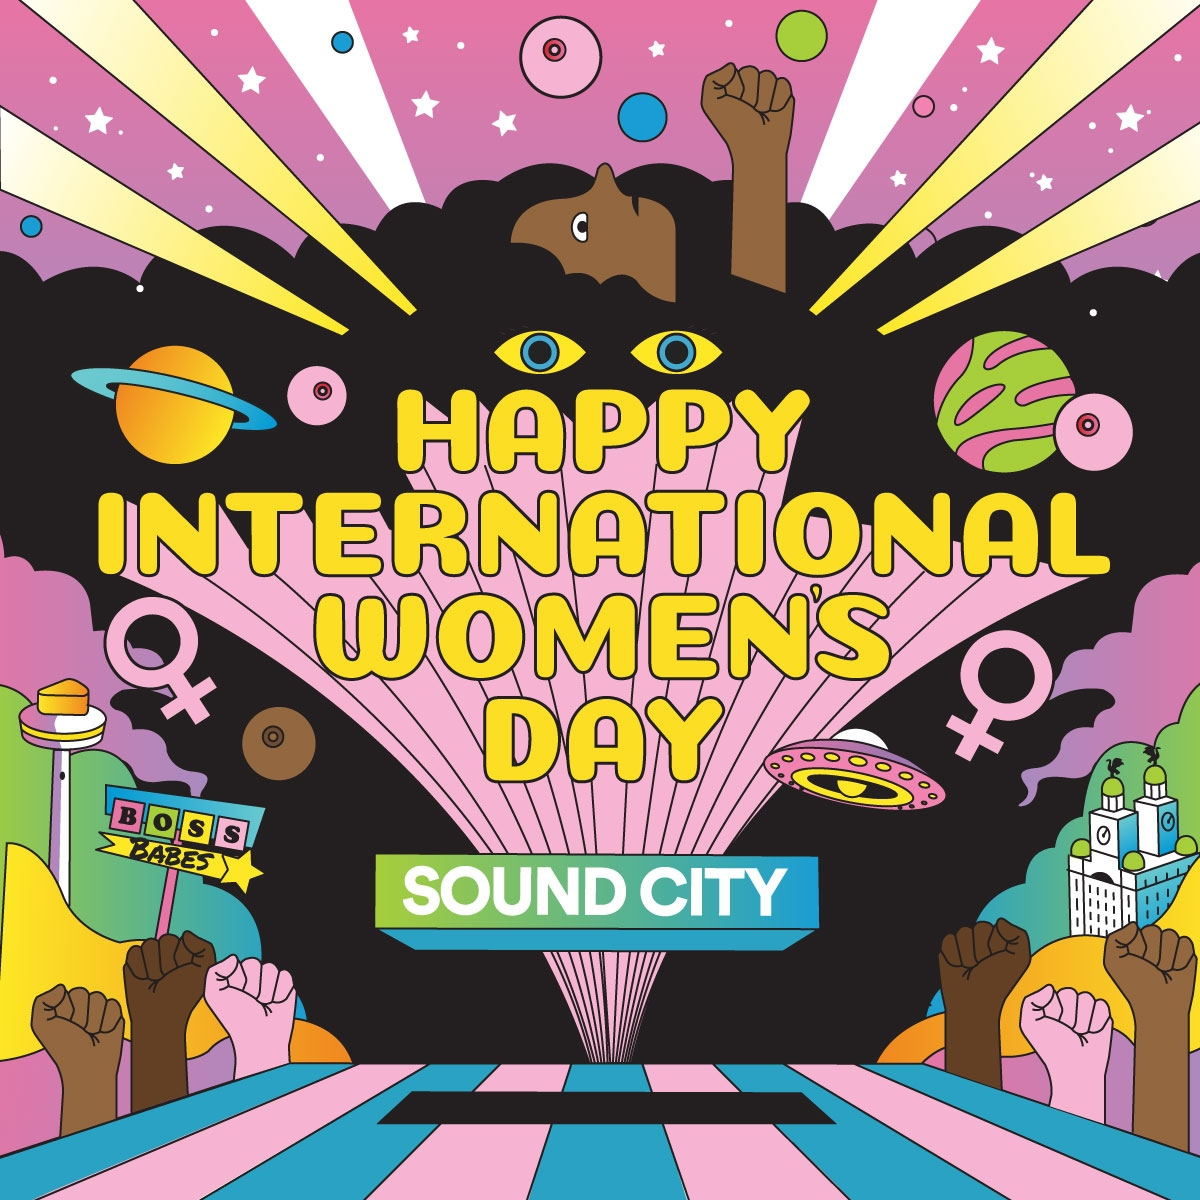 Sound City's International Women's Day celebrations